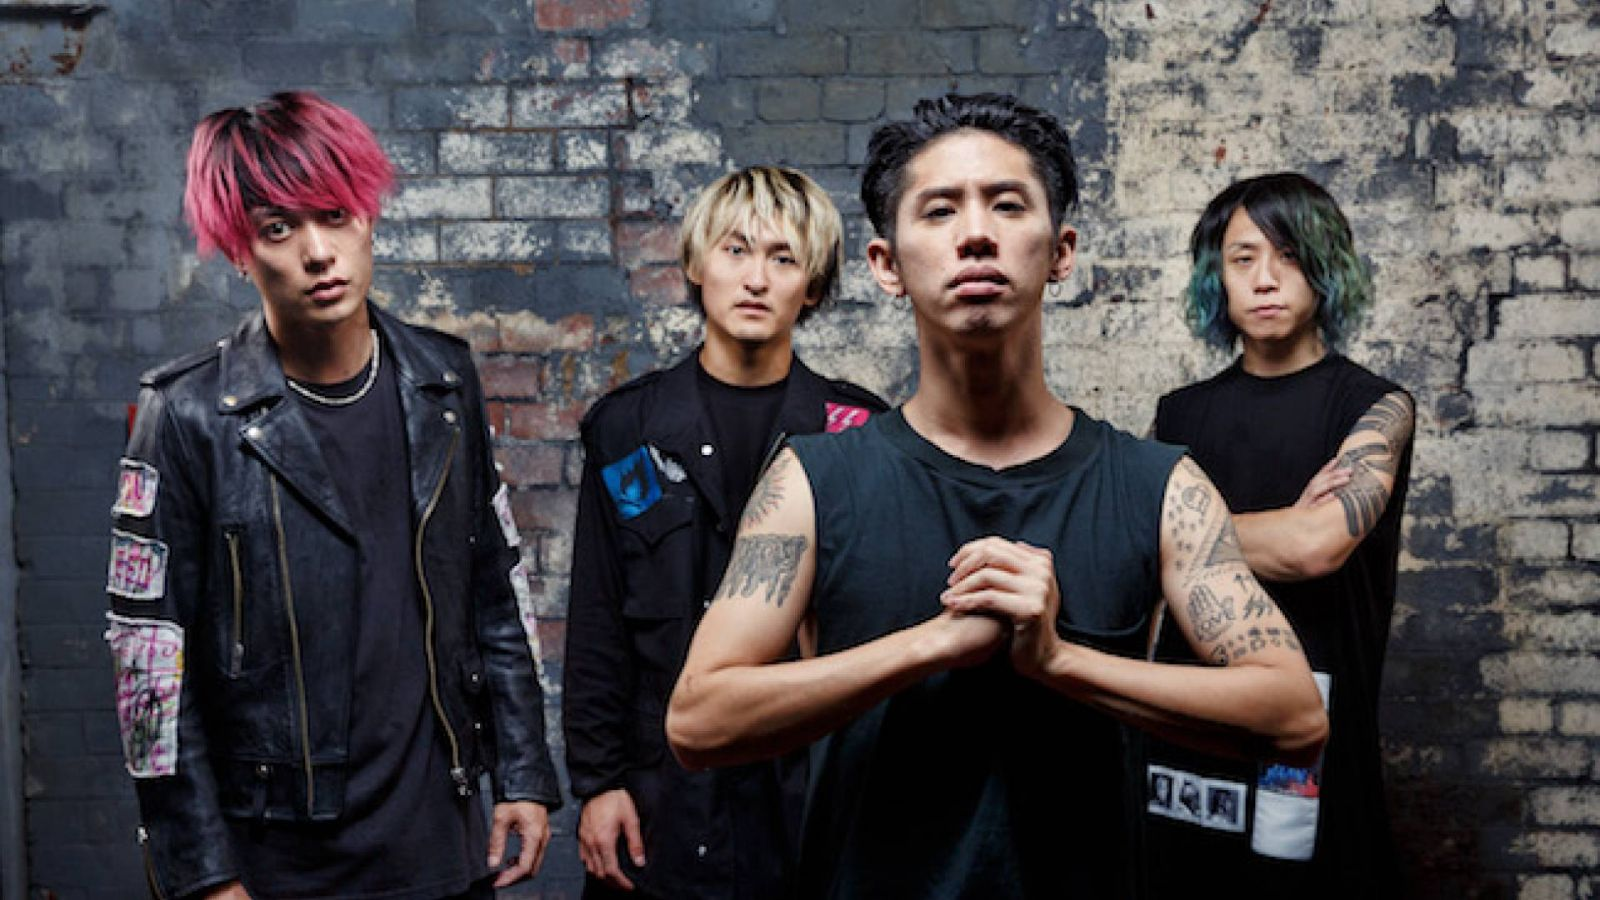 ONE OK ROCK Announces North American Tour and World Tour © AMUSE INC. All rights reserved.